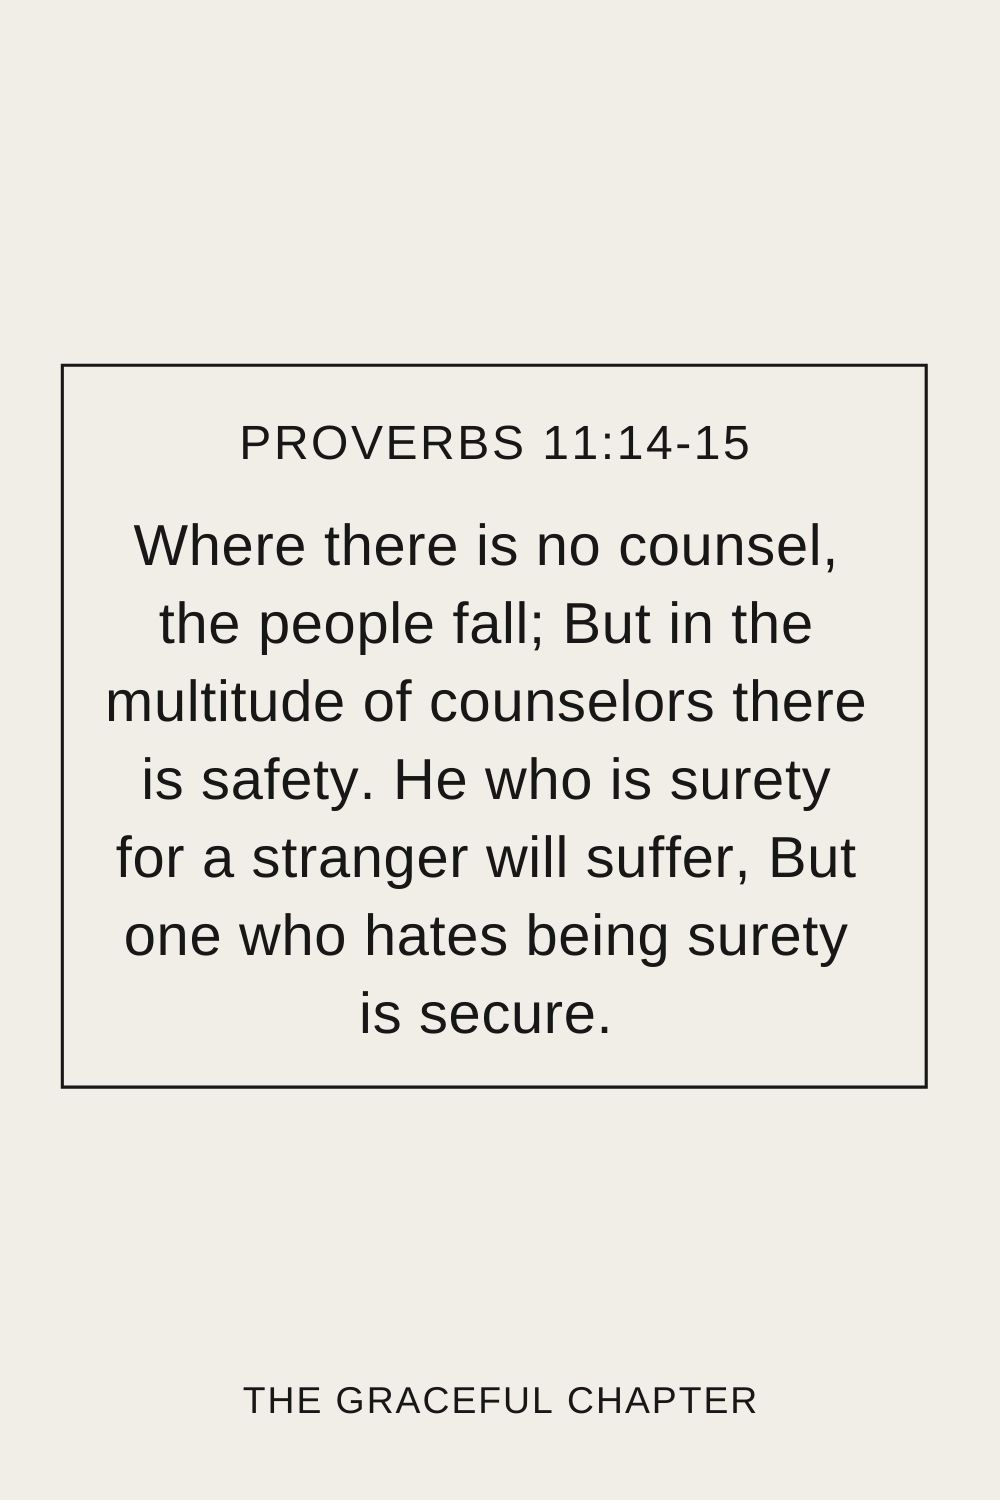 Where there is no counsel, the people fall; But in the multitude of counselors there is safety. He who is surety for a stranger will suffer, But one who hates being surety is secure. Proverbs 11:14-15